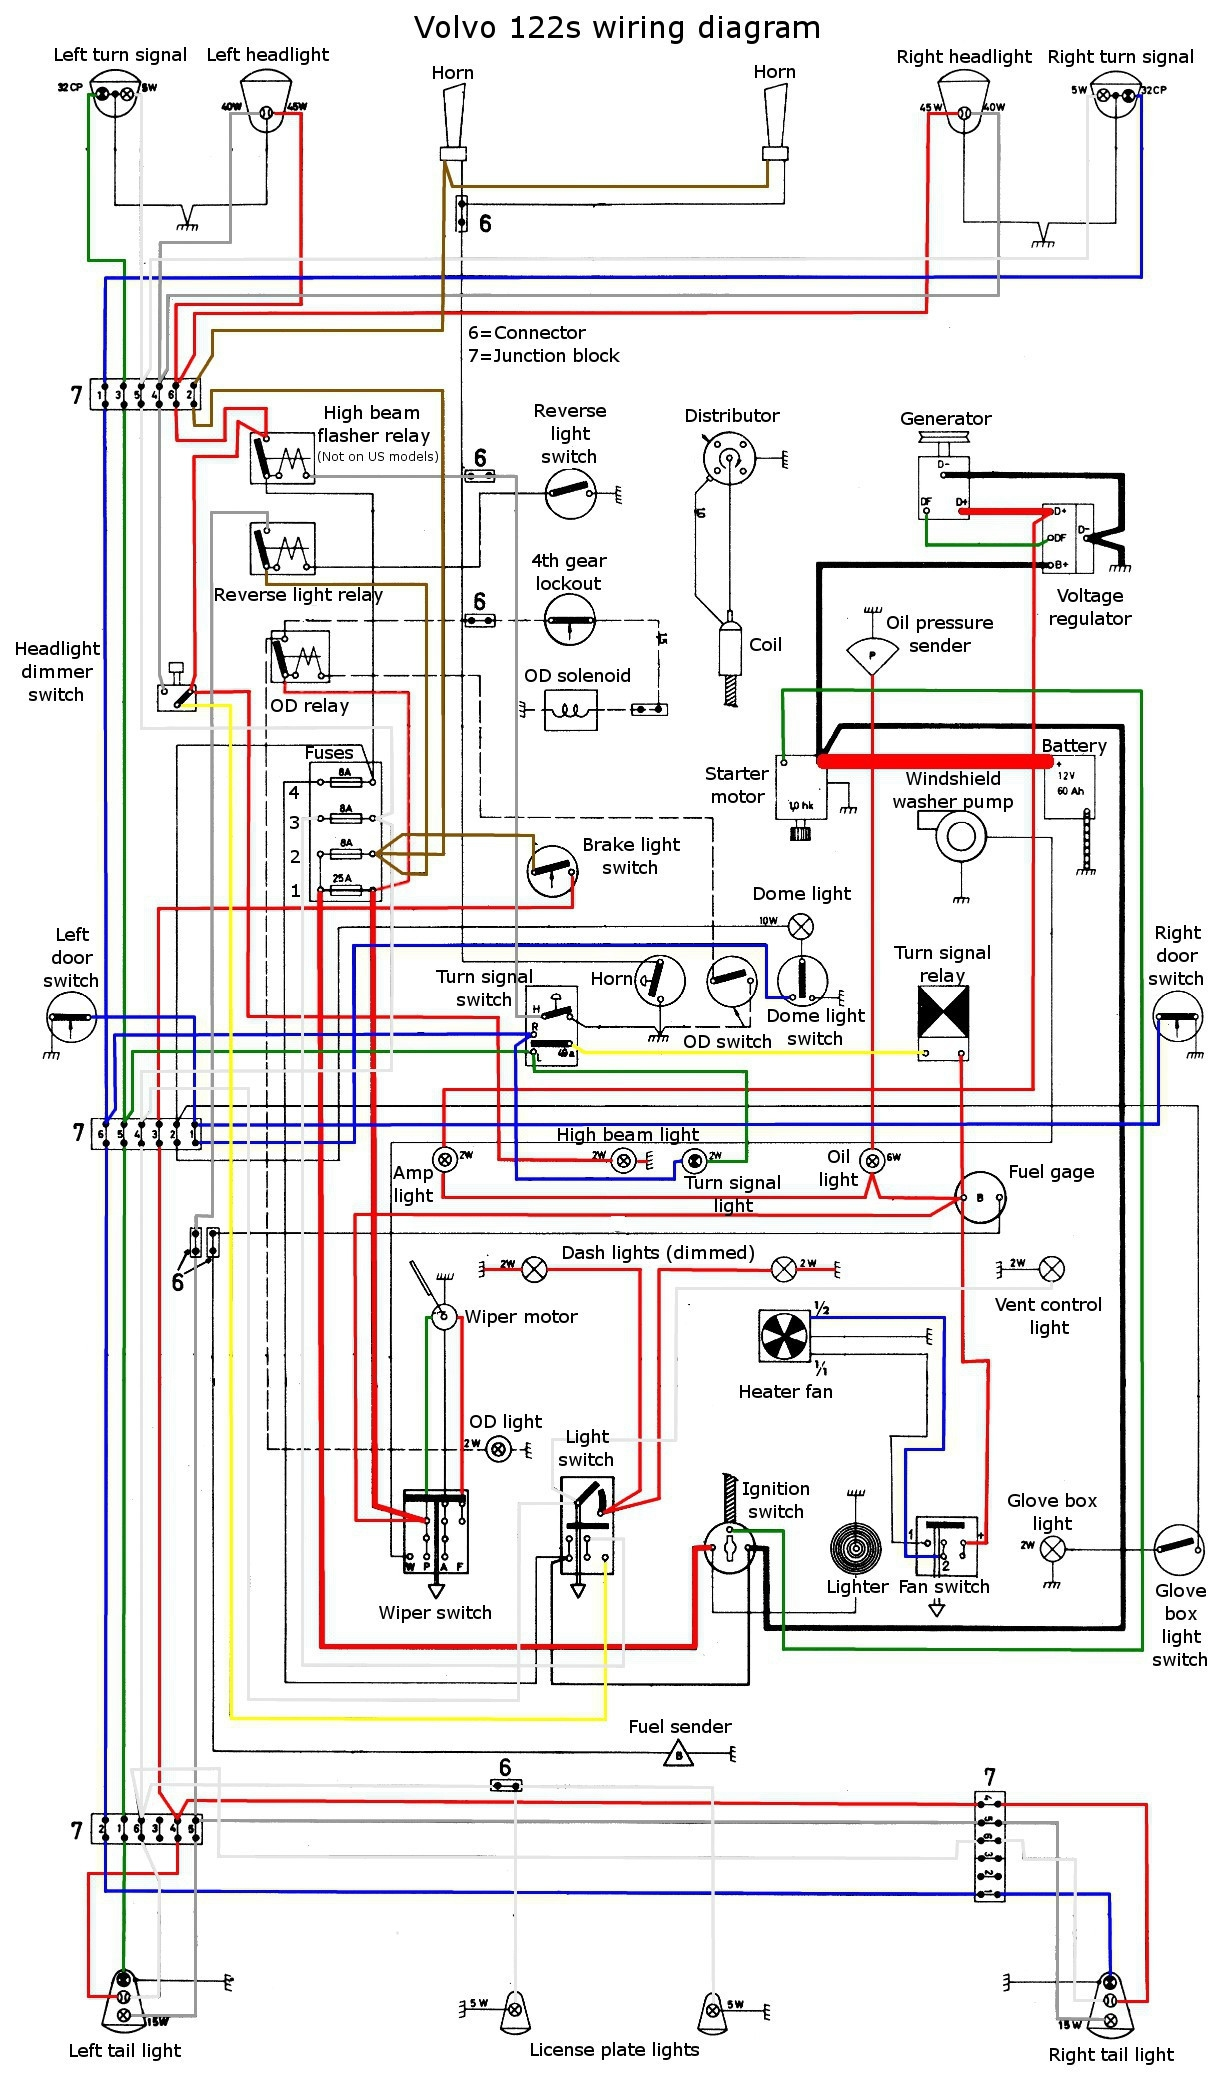 amp research power step wiring diagram - amp research power step wiring  diagram 2018 amp research